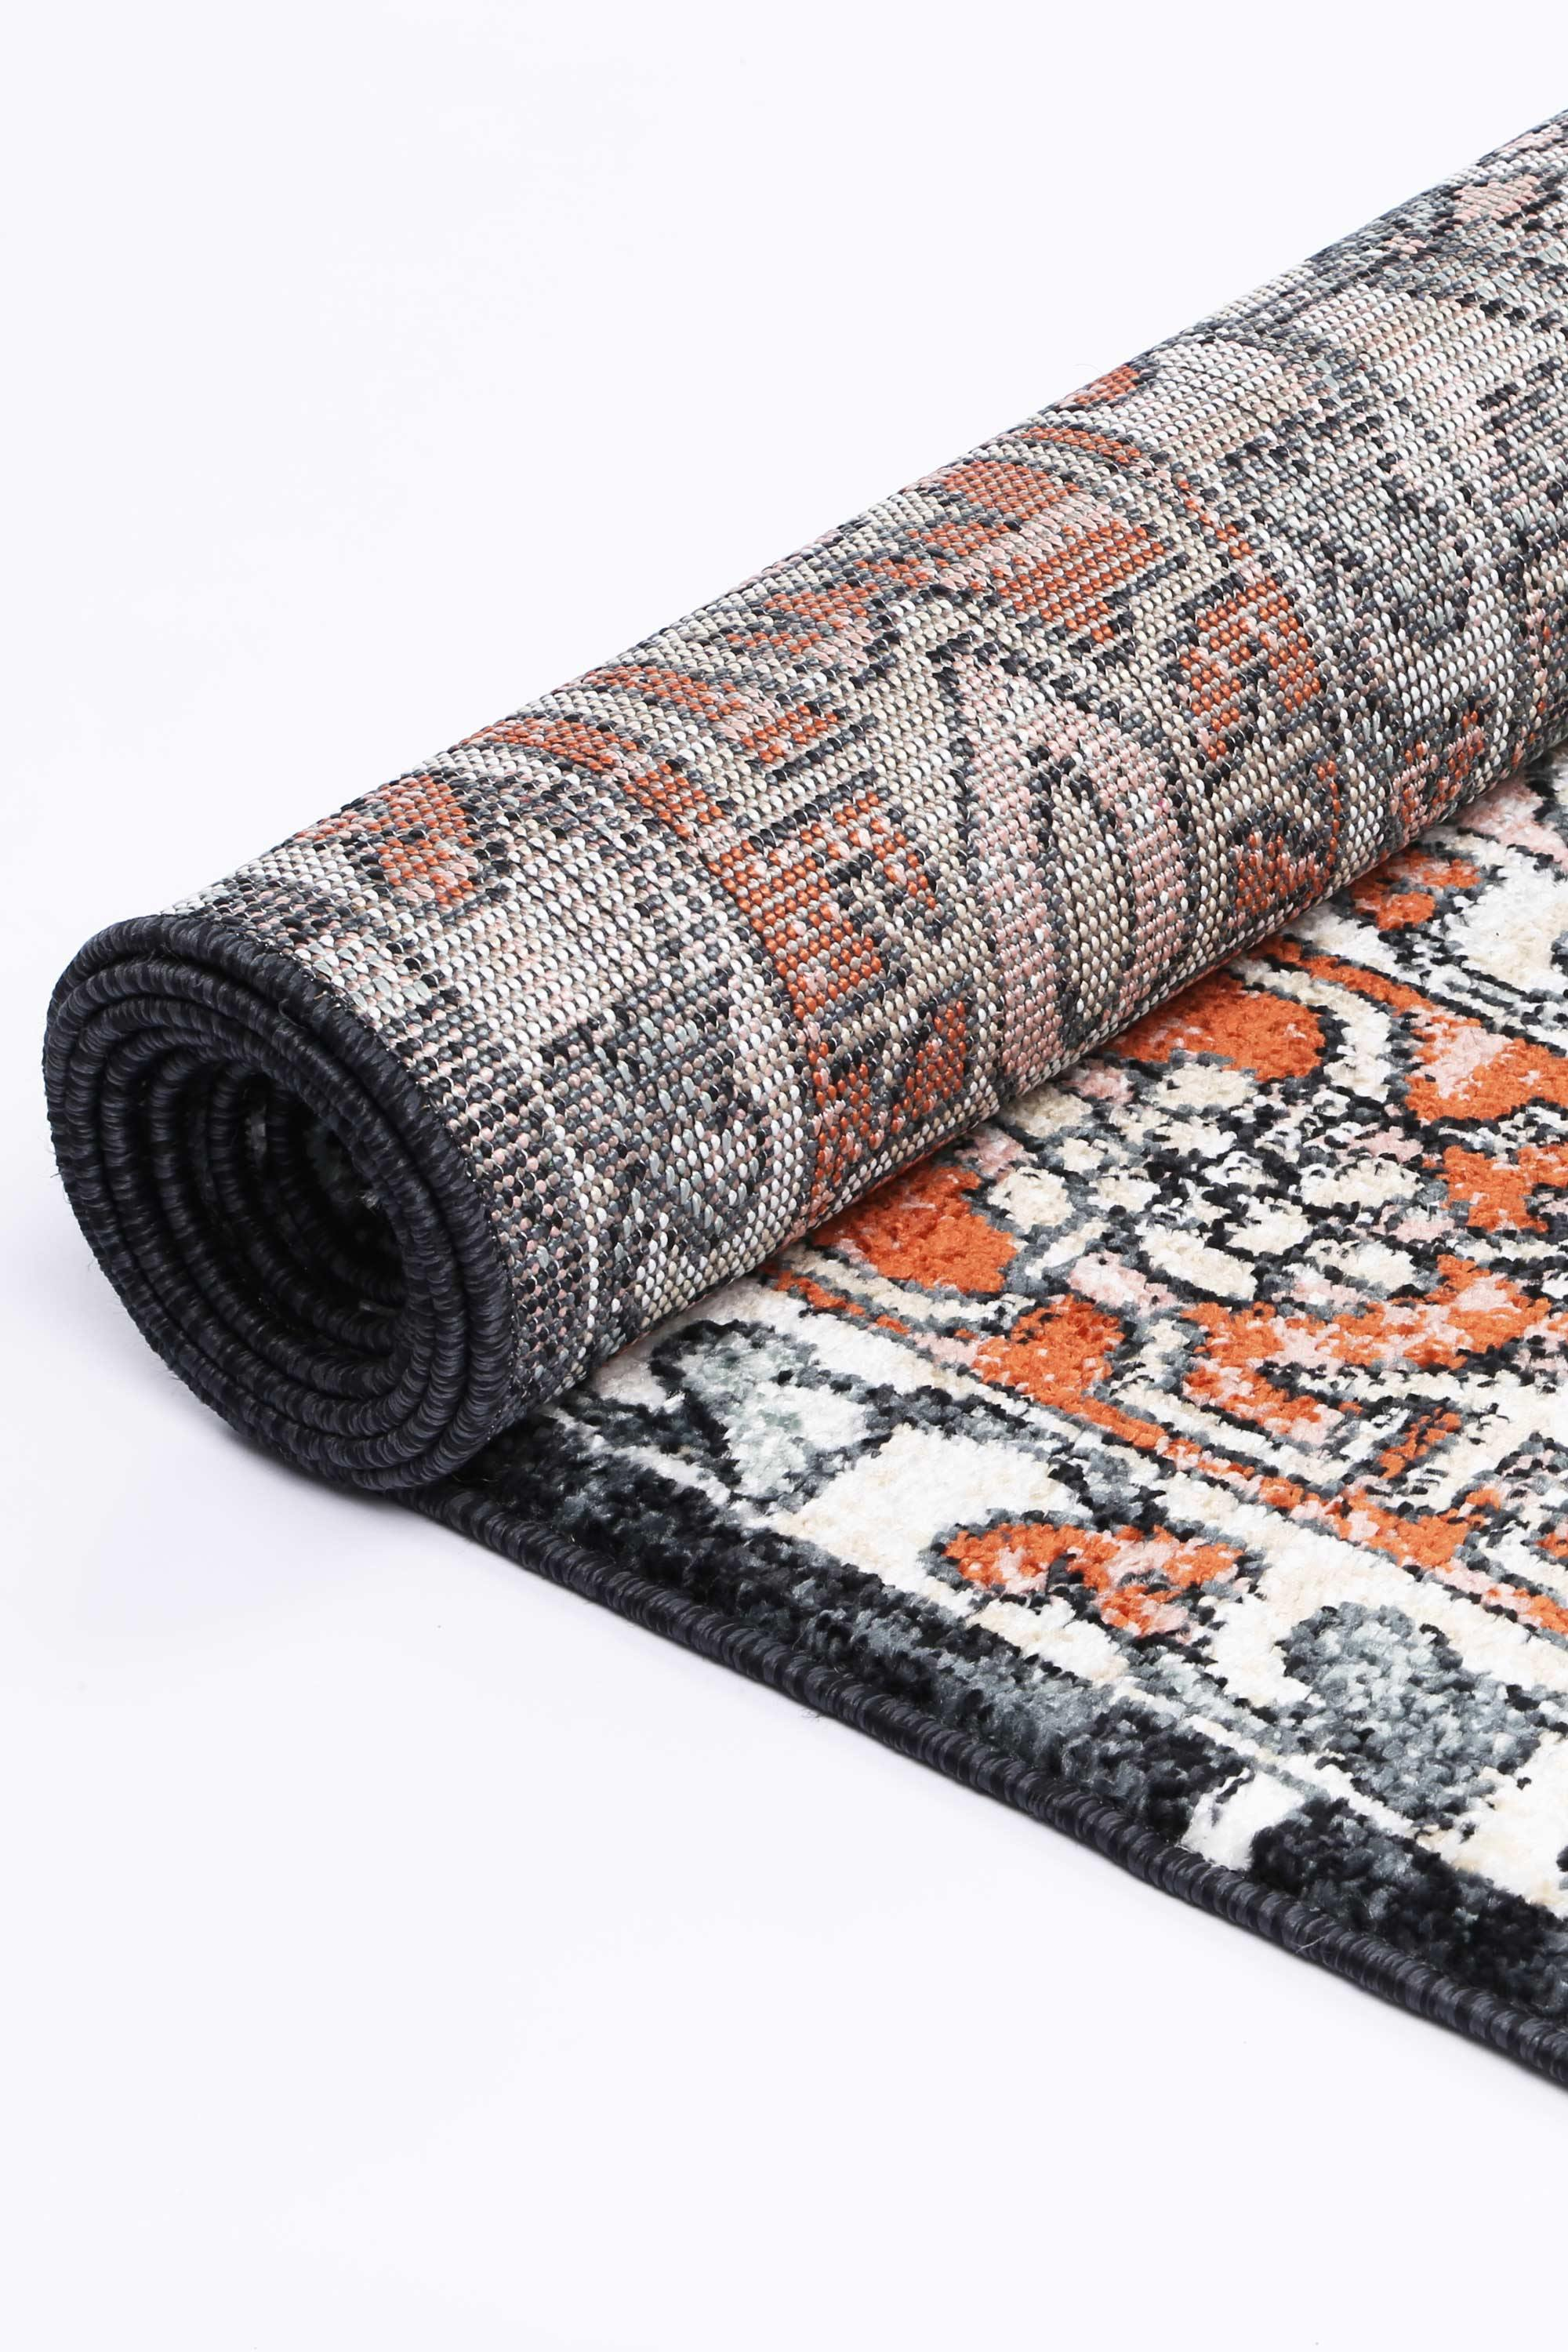 Abbot Traditional Terracotta Black Rug - The Rugs